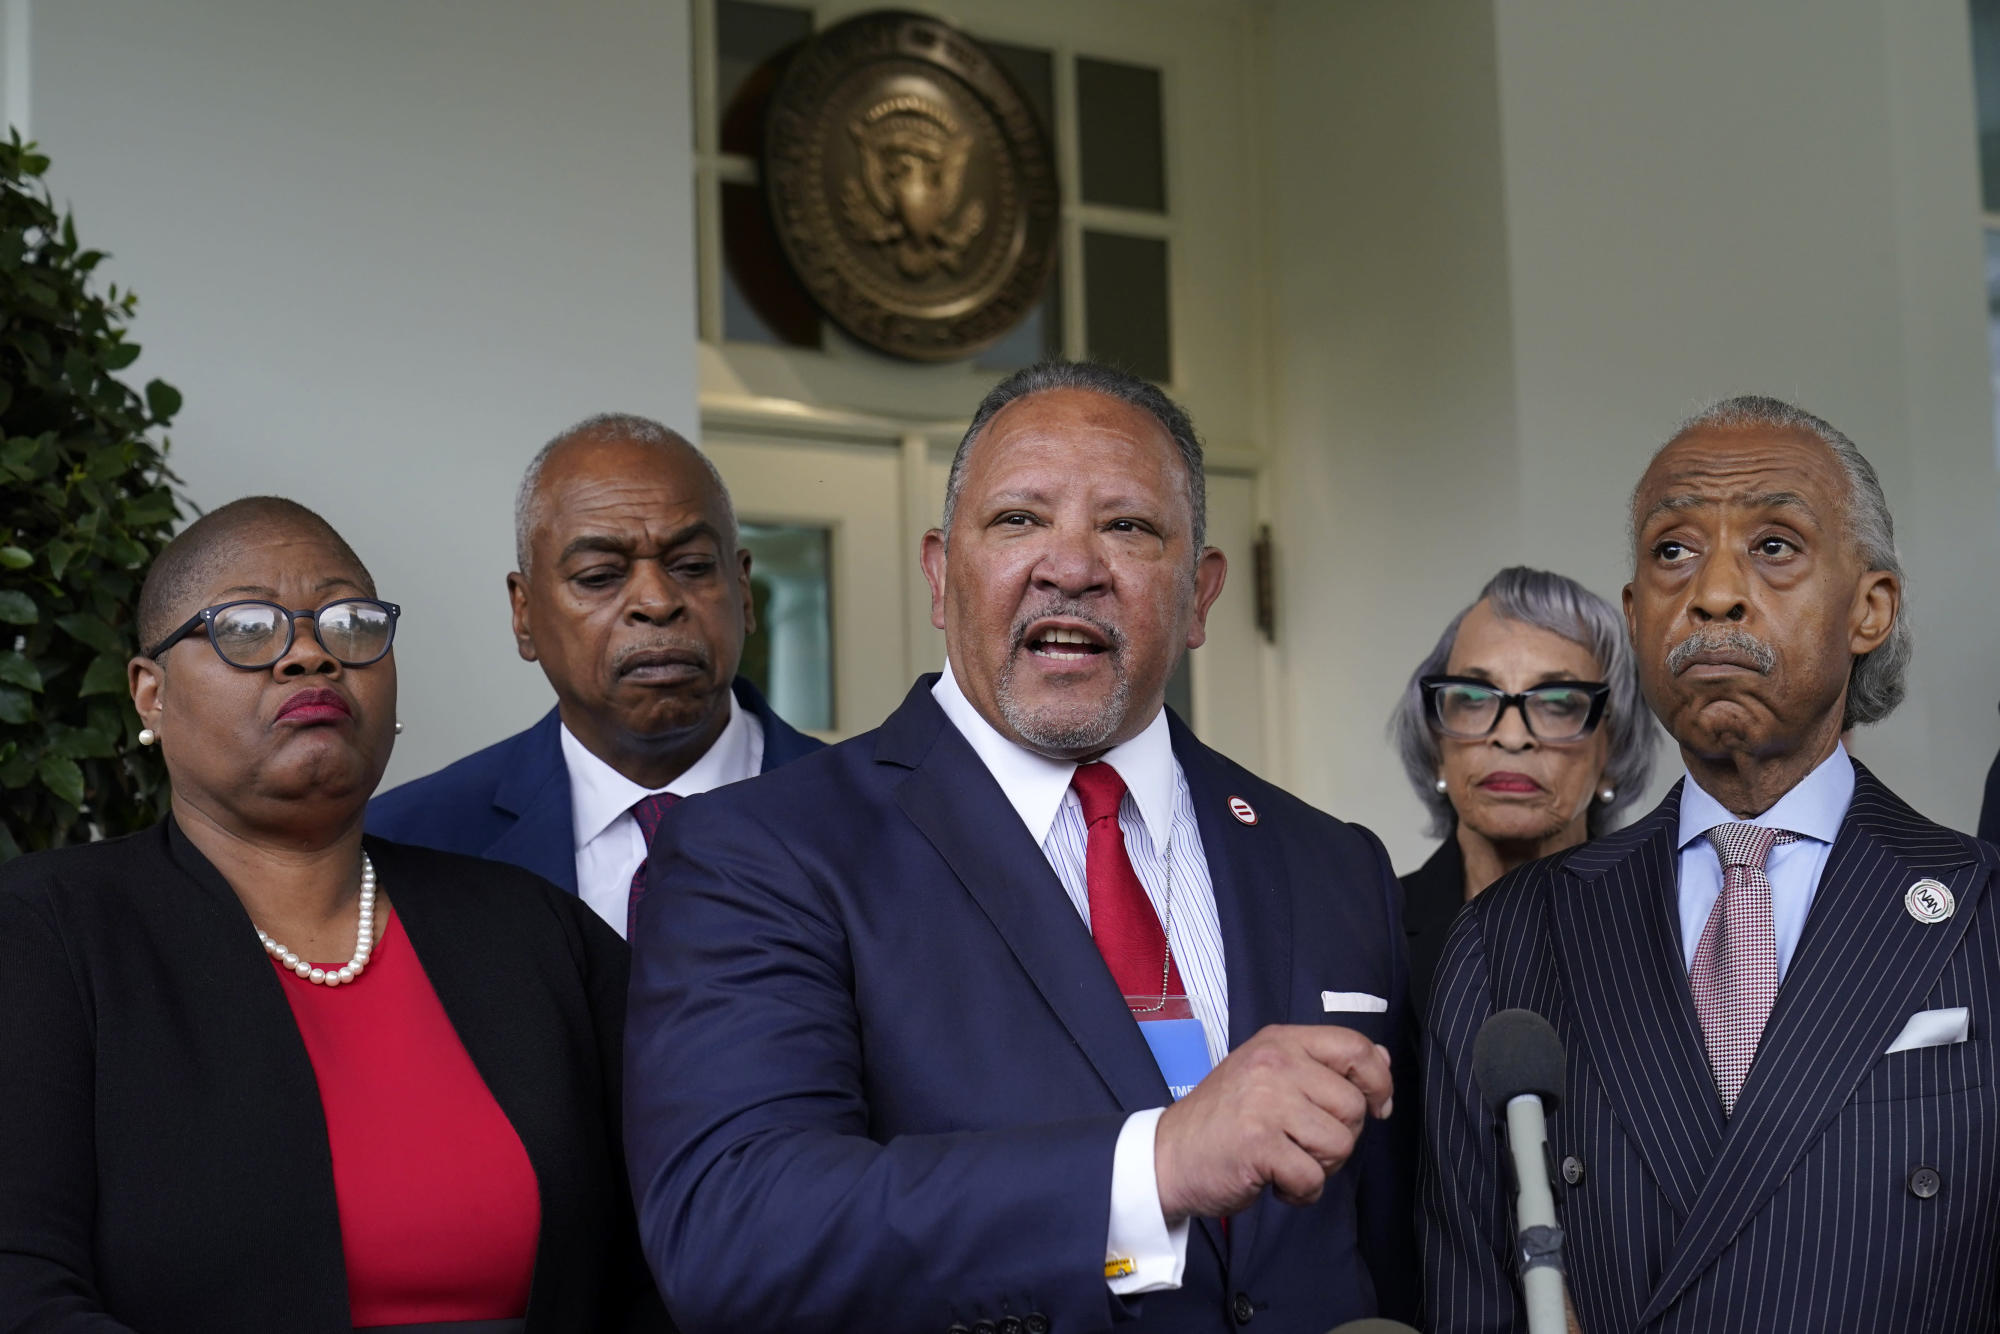 As frustration mounts, a White House push on voting rights